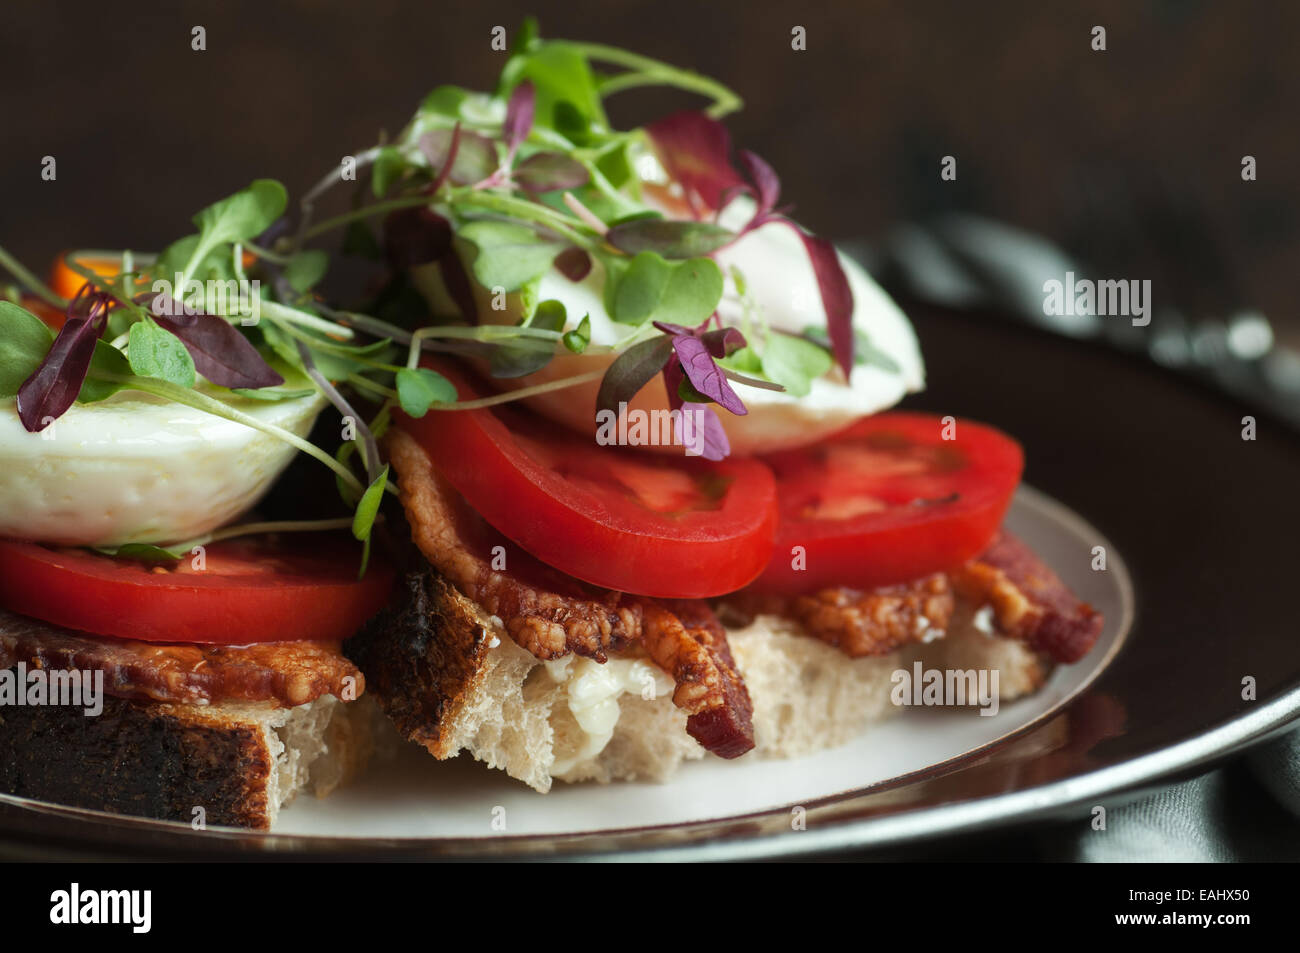 Colorful open faced breakfast sandwich with bacon, tomato, poached egg and sprouts on fresh country bread - Stock Image